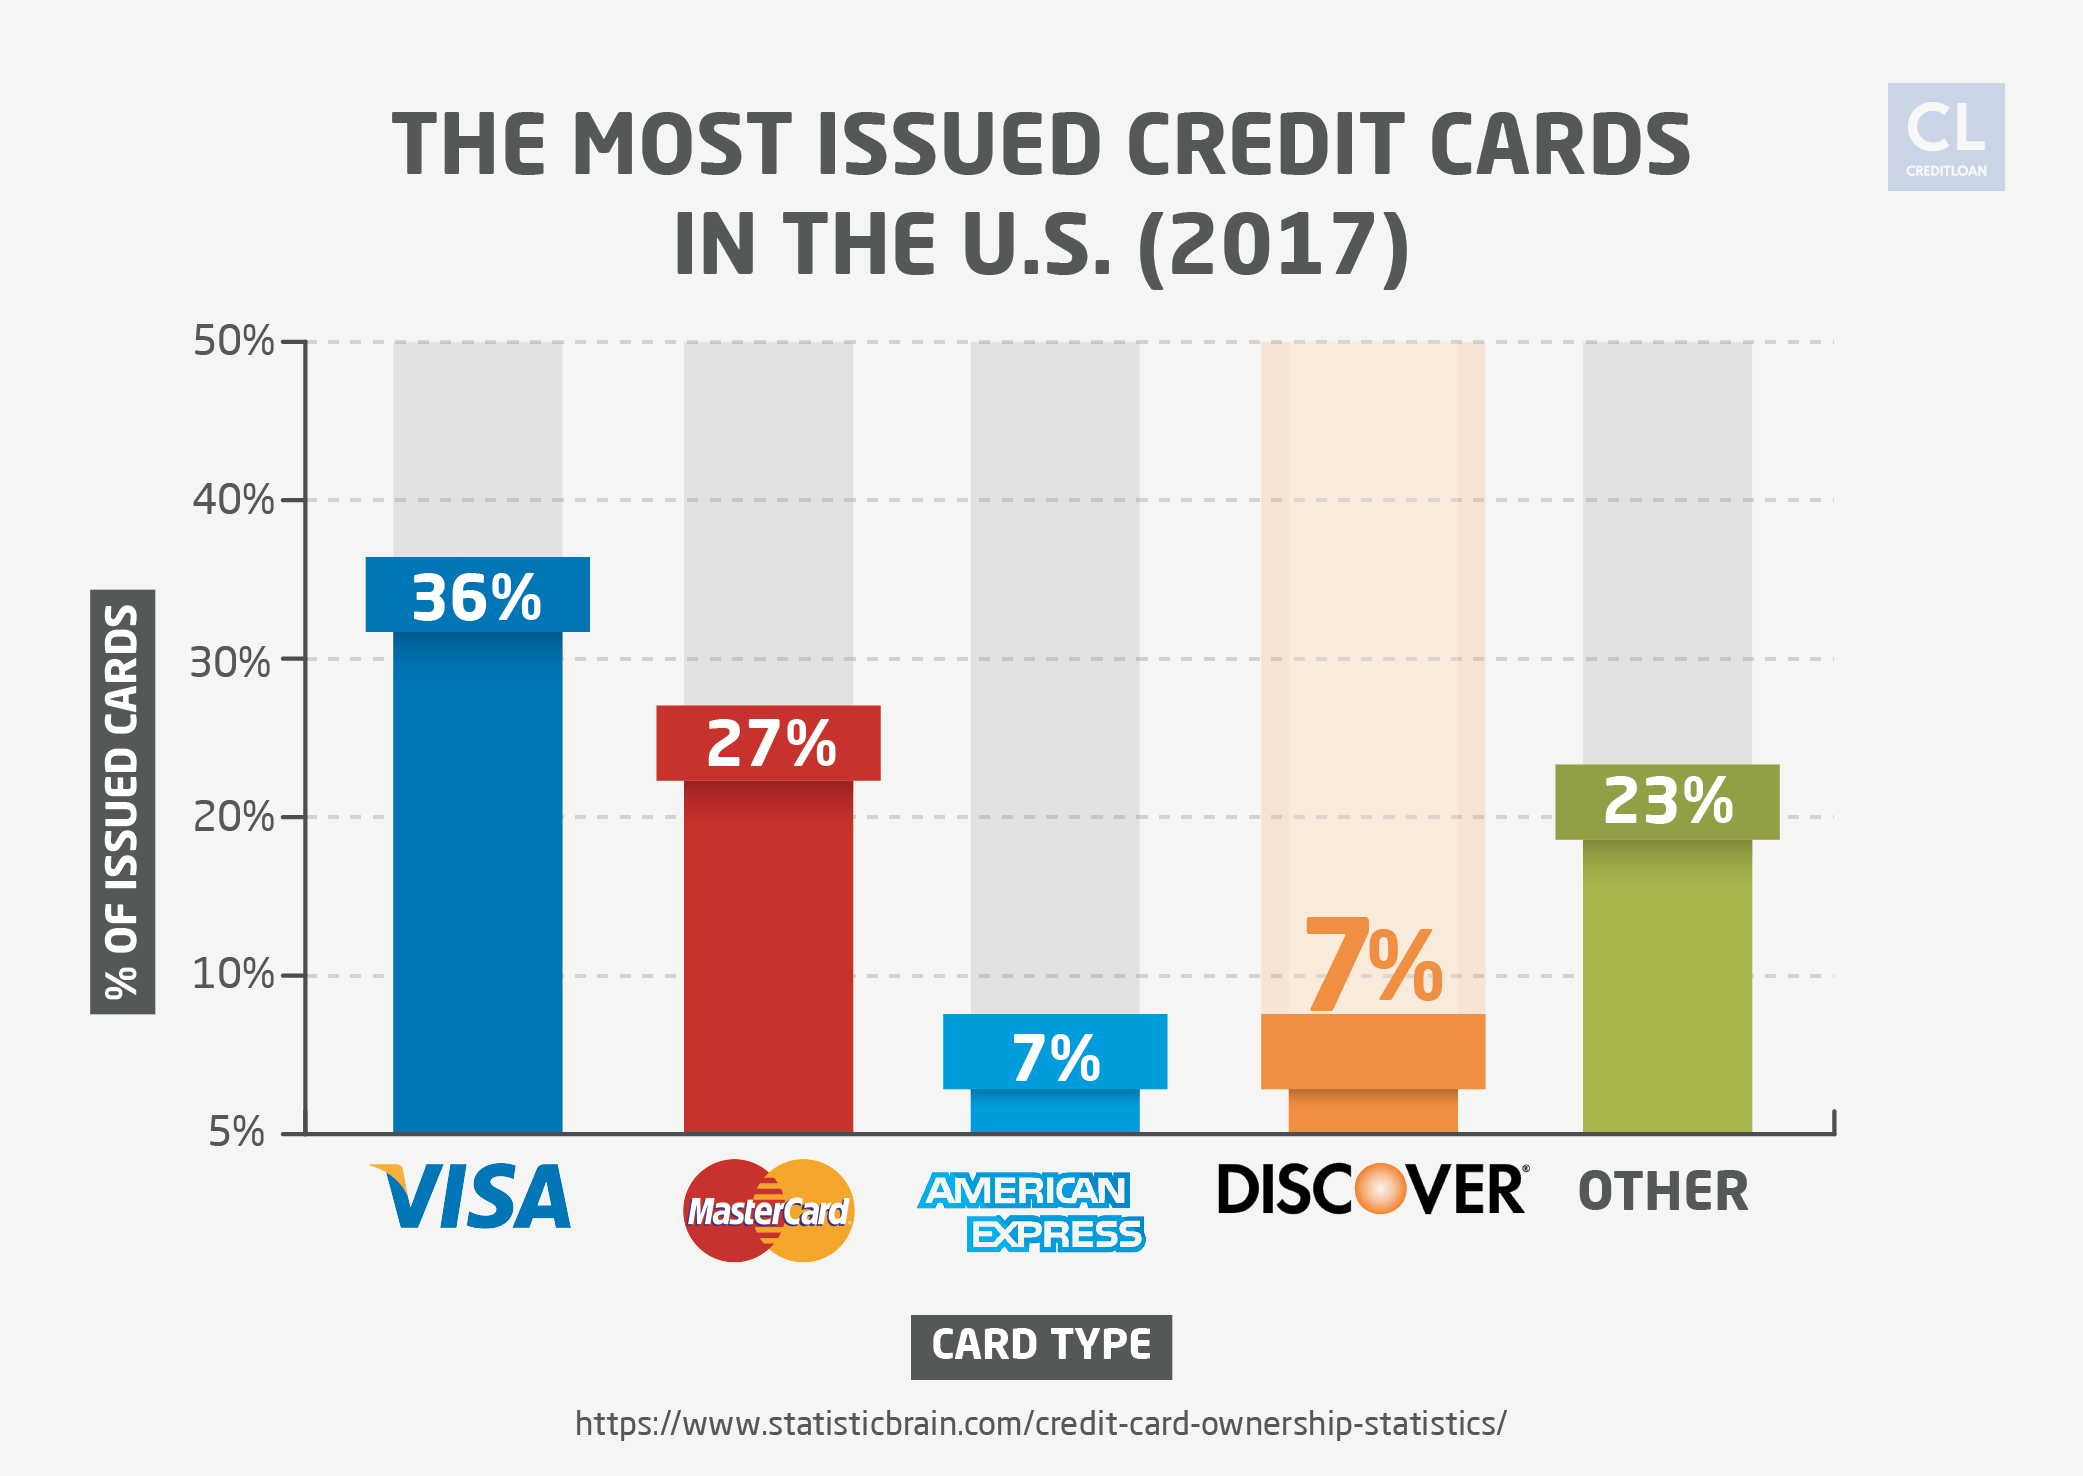 The Most Issued Credit Cards in the U.S. in 2017